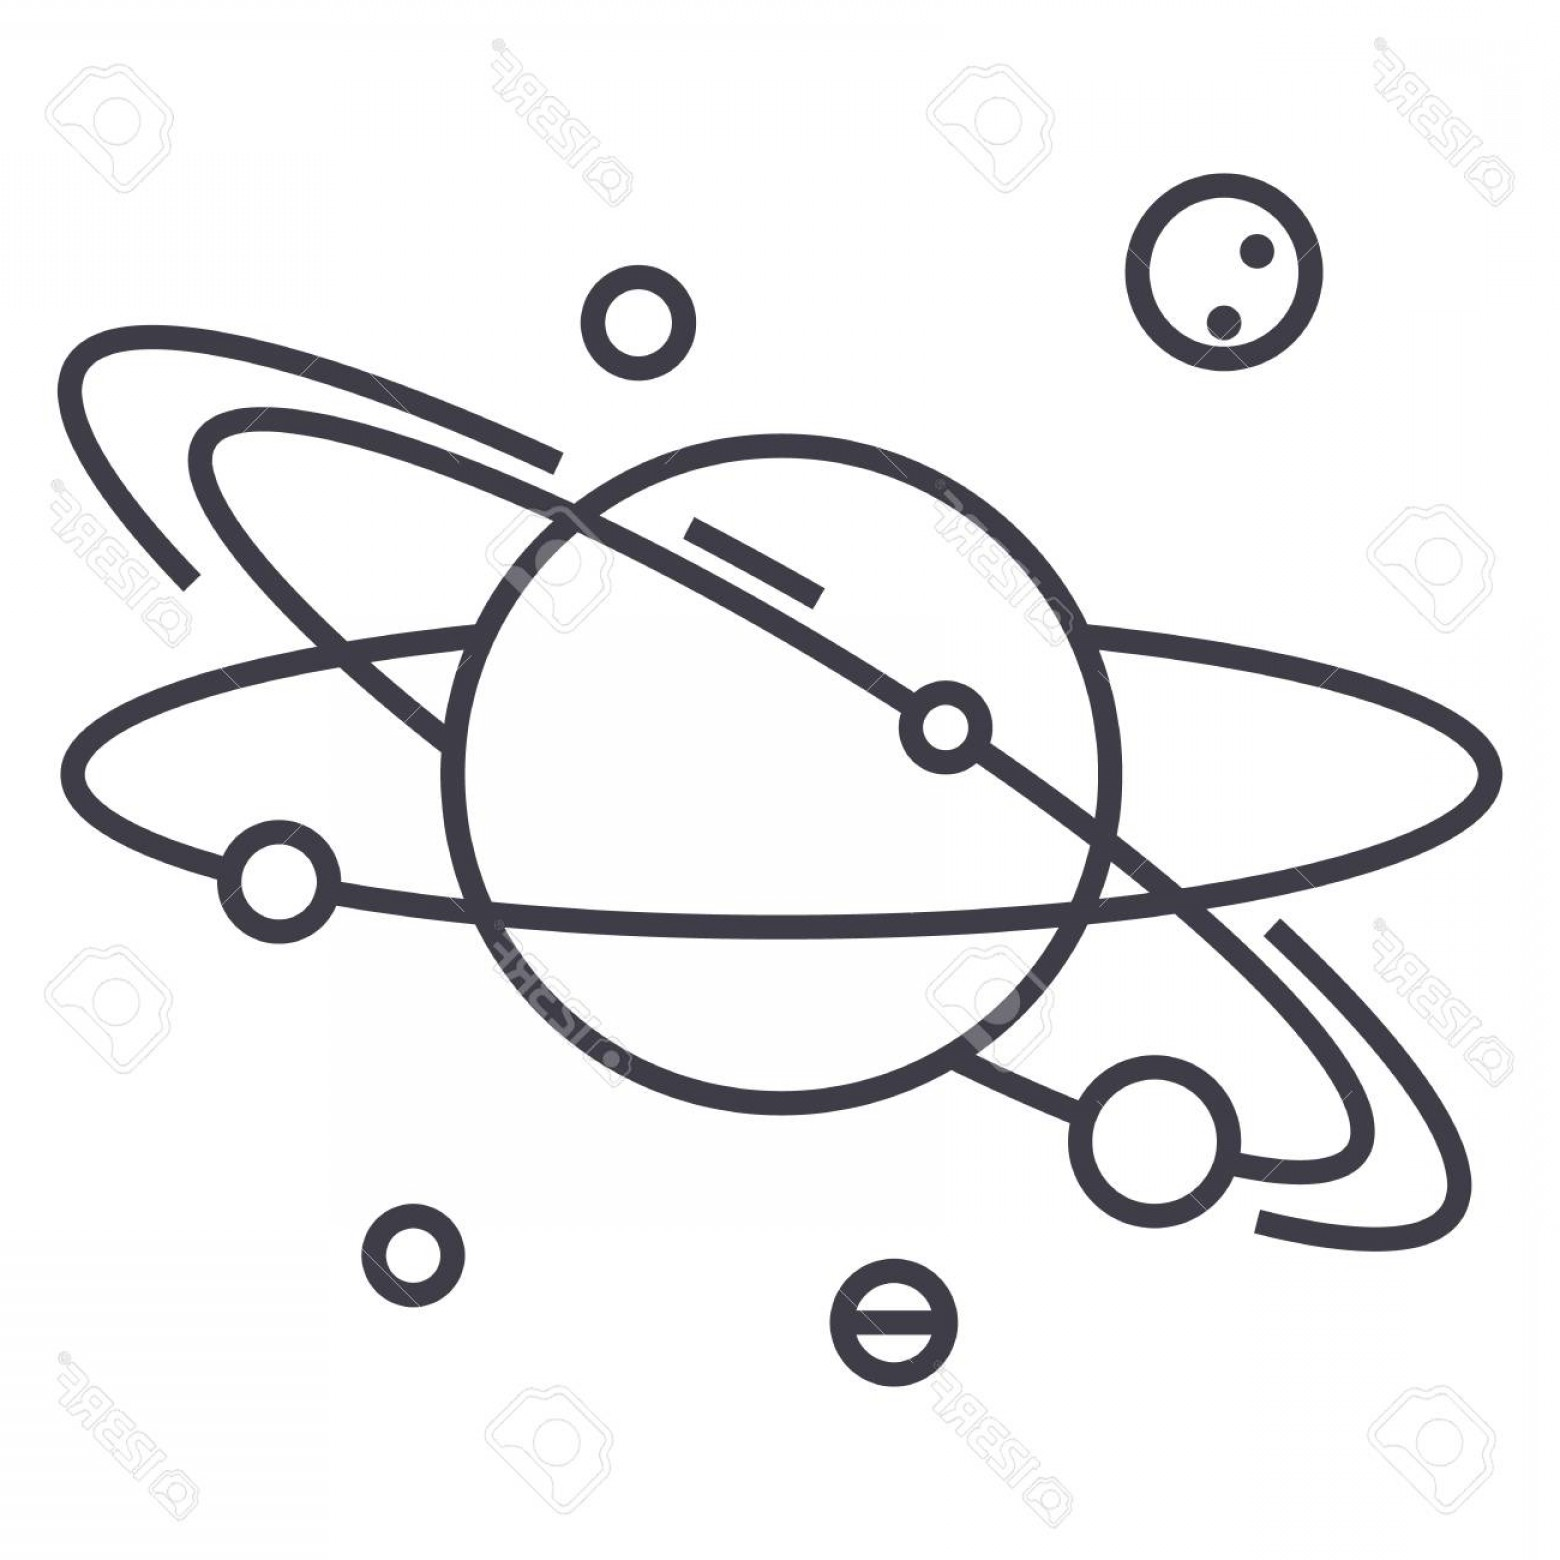 Solar System Cartoon Drawing | Free download best Solar ... graphic free library